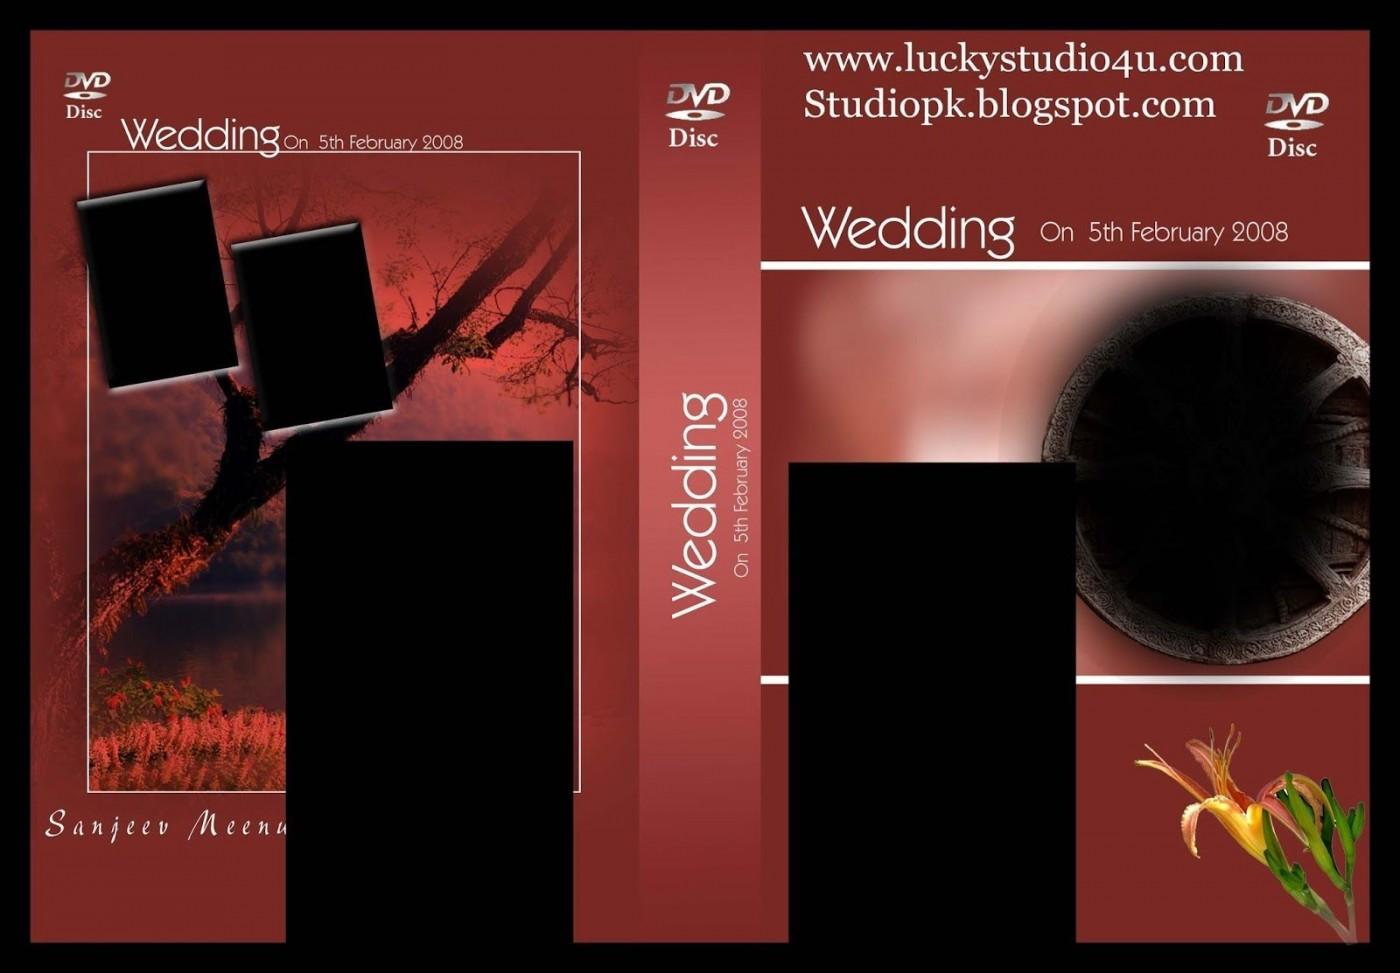 009 Incredible Wedding Cd Cover Design Template Free Download High Definition 1400